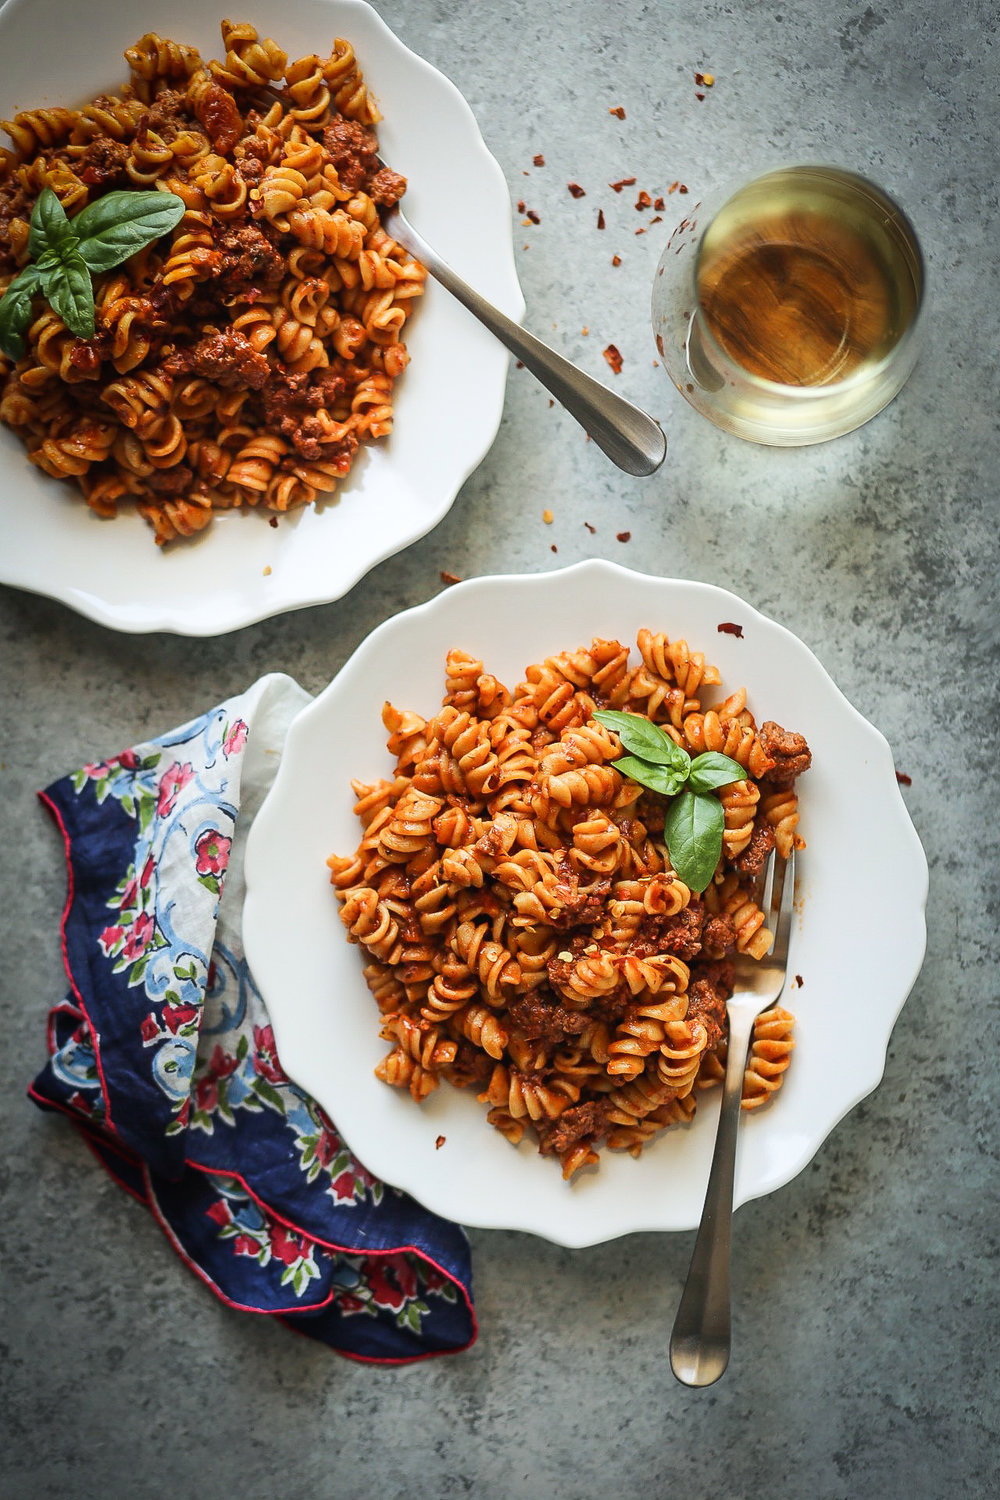 Instant Pot Pasta with Meat Sauce | Set the Table #instantpot #recipes #pasta #onepotmeal #dinnertonight